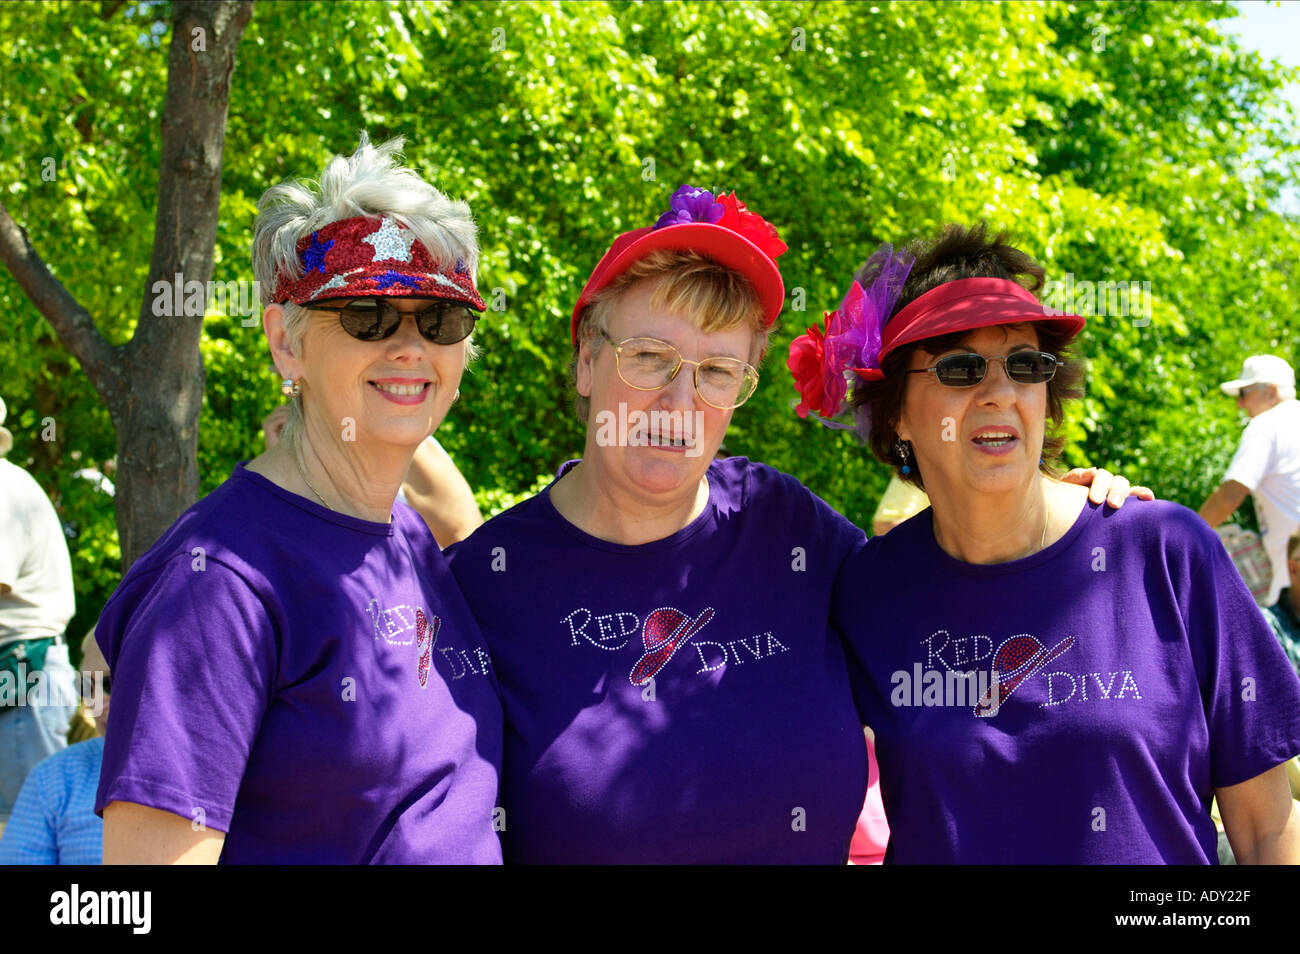 ILLINOIS Libertyville Three ladies members of The Red Hat Club wear purple shirts - Stock Image